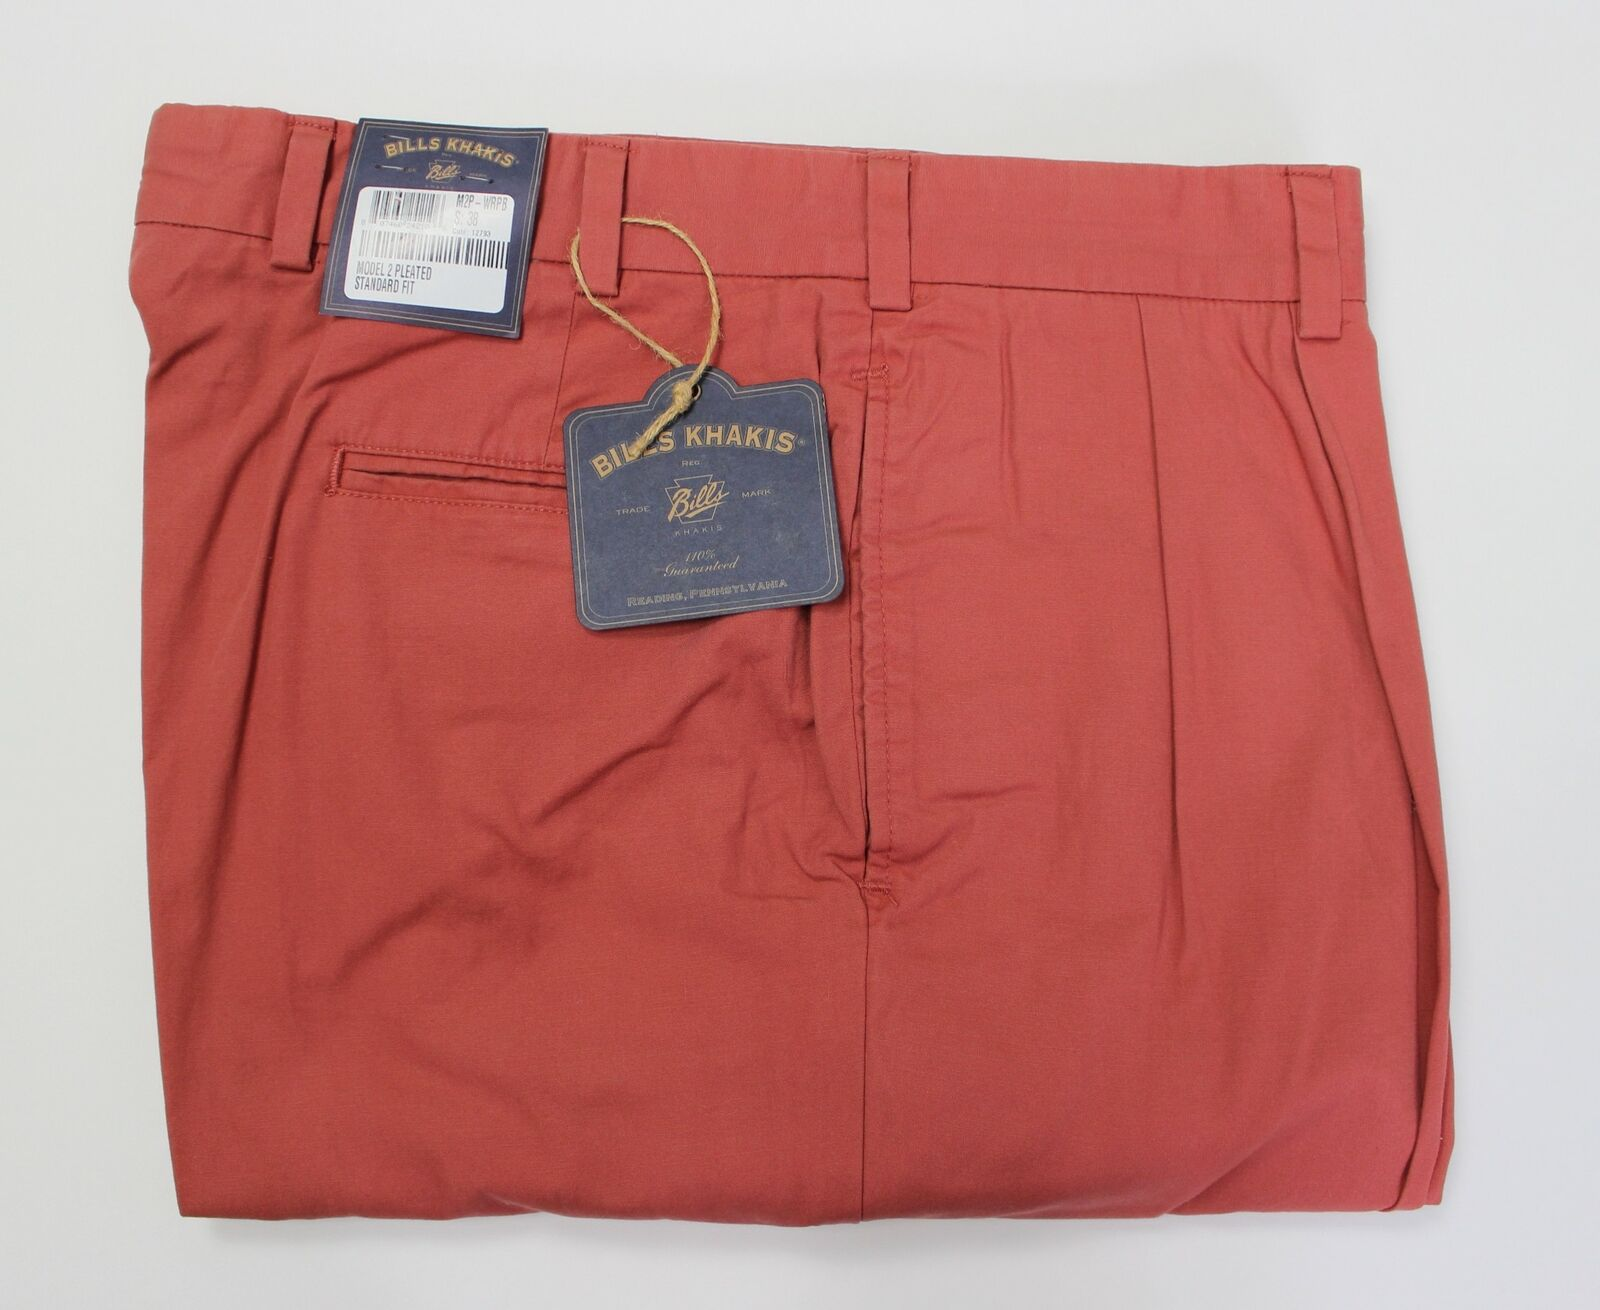 BRAND NEW-Bills Khakis M2 Weathered Red Pleated Poplin Pants -Size 46-MSRP